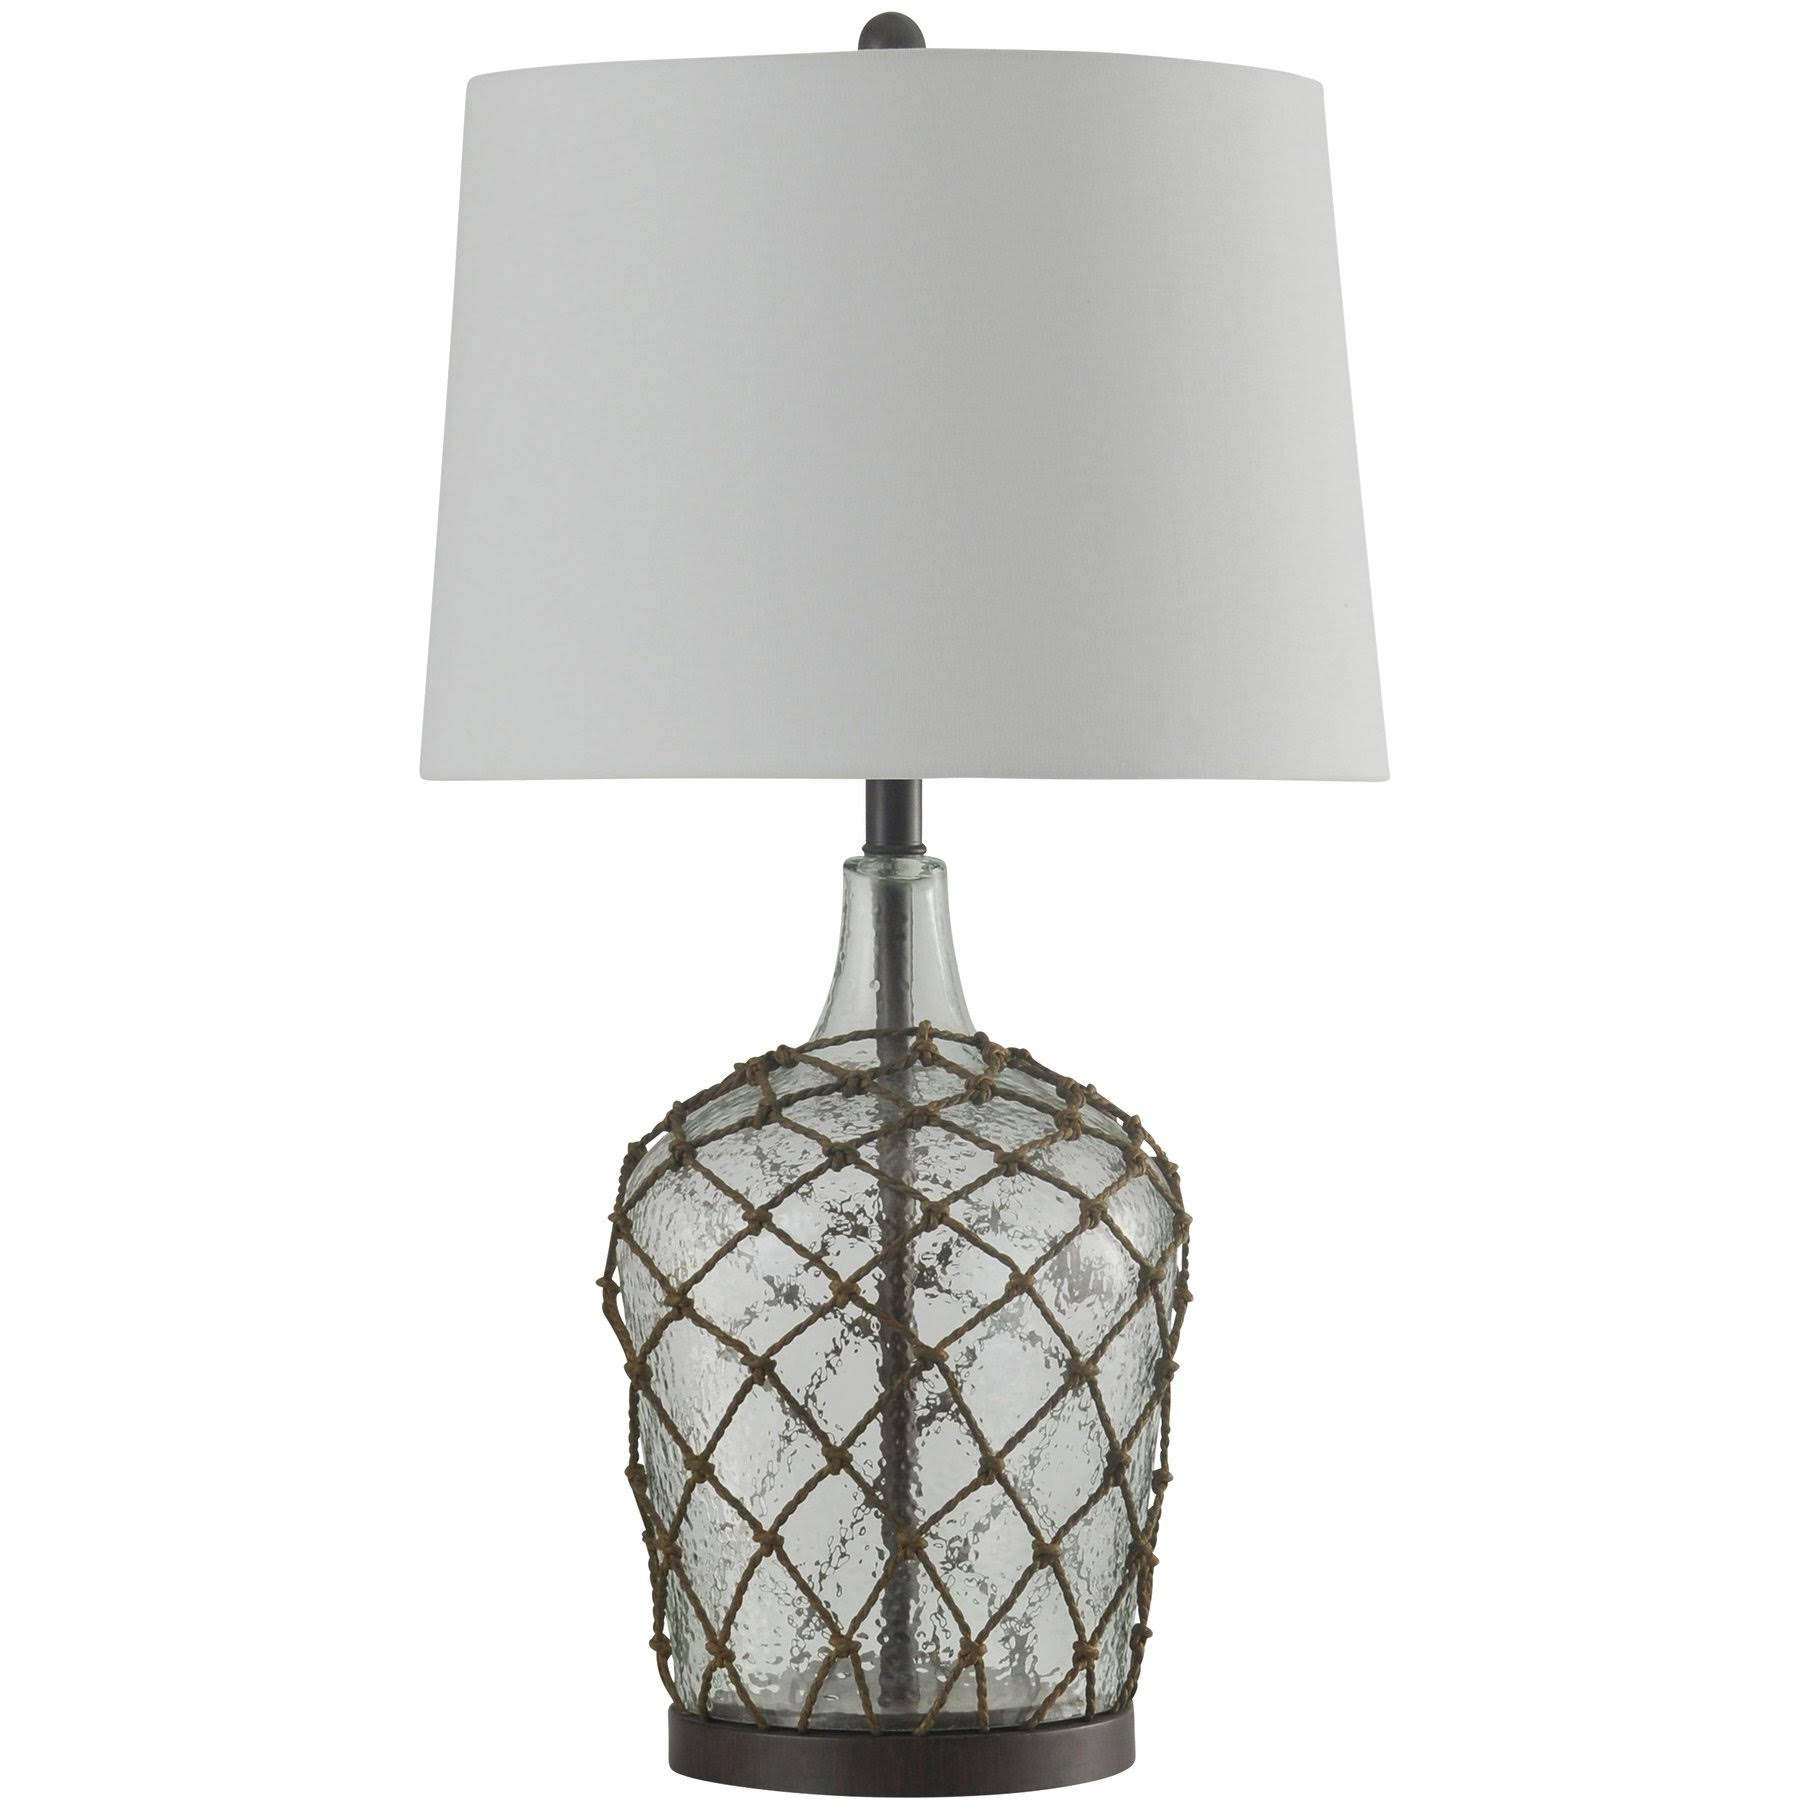 Gwg Outlet Table Lamp in Cayos Clear Finish L314501DS